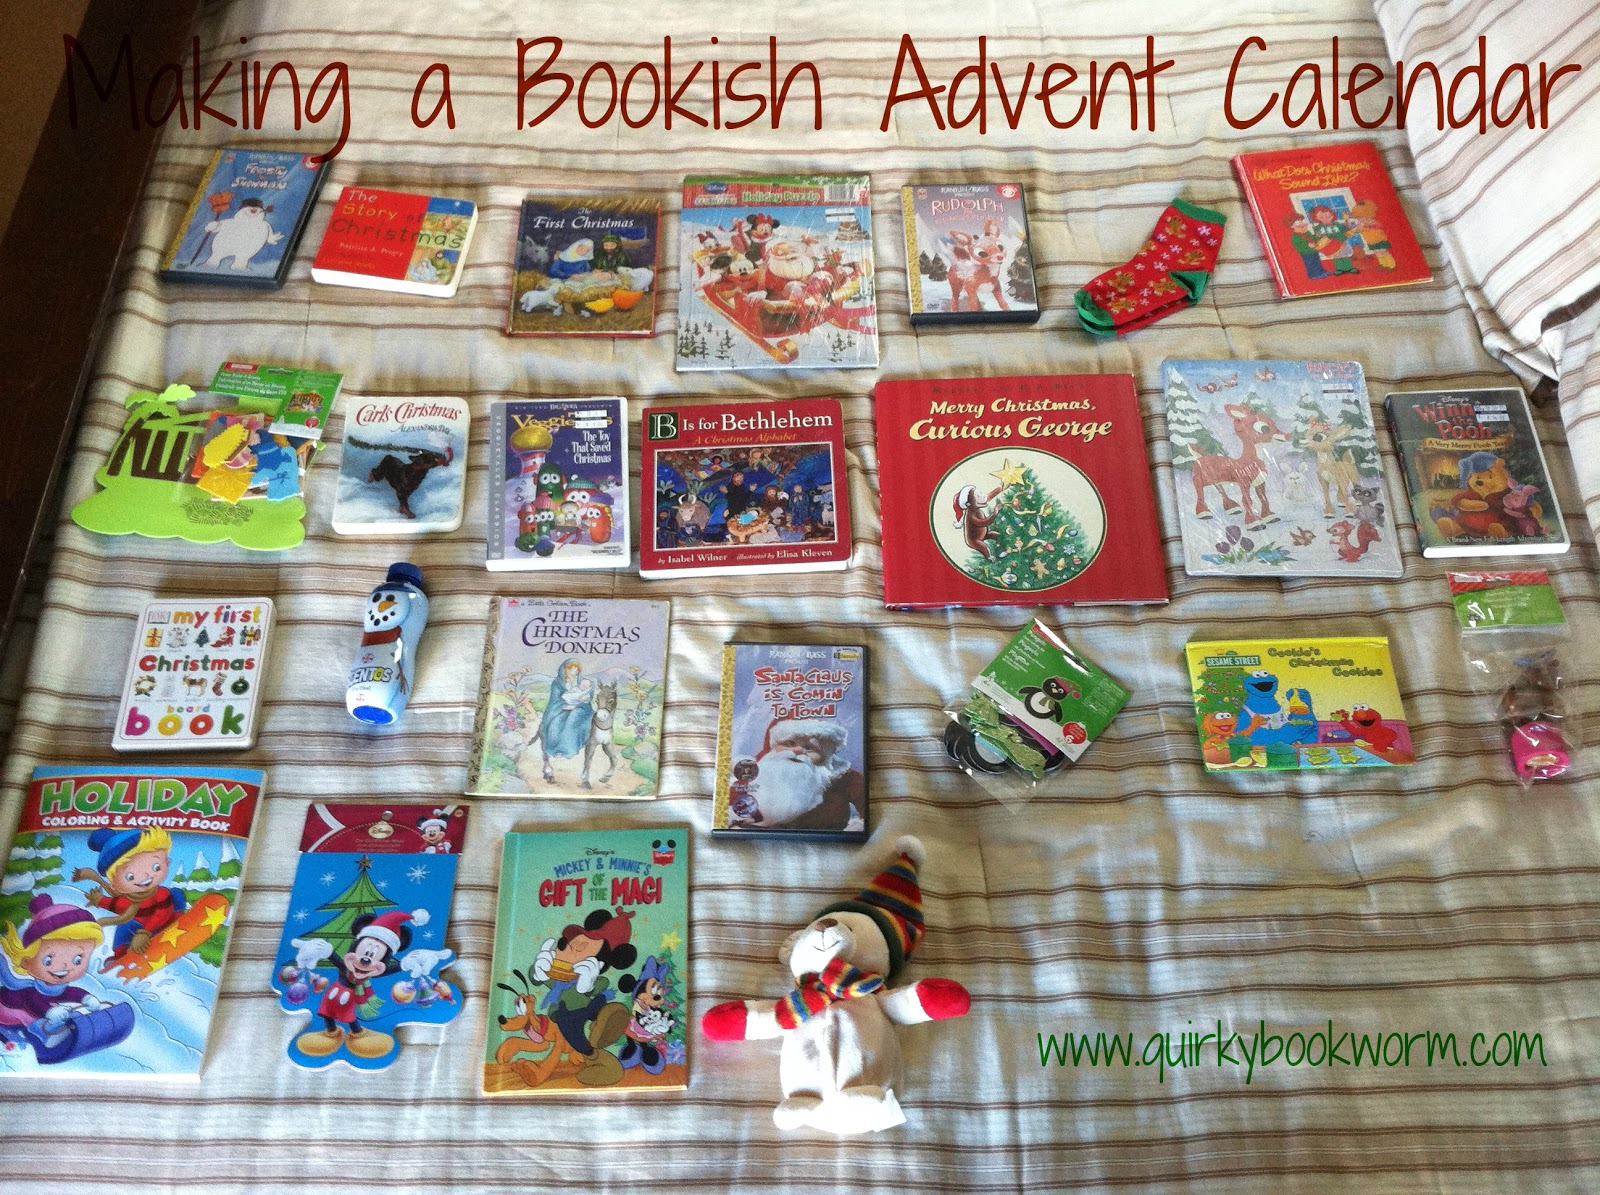 Making a Bookish Advent Calendar